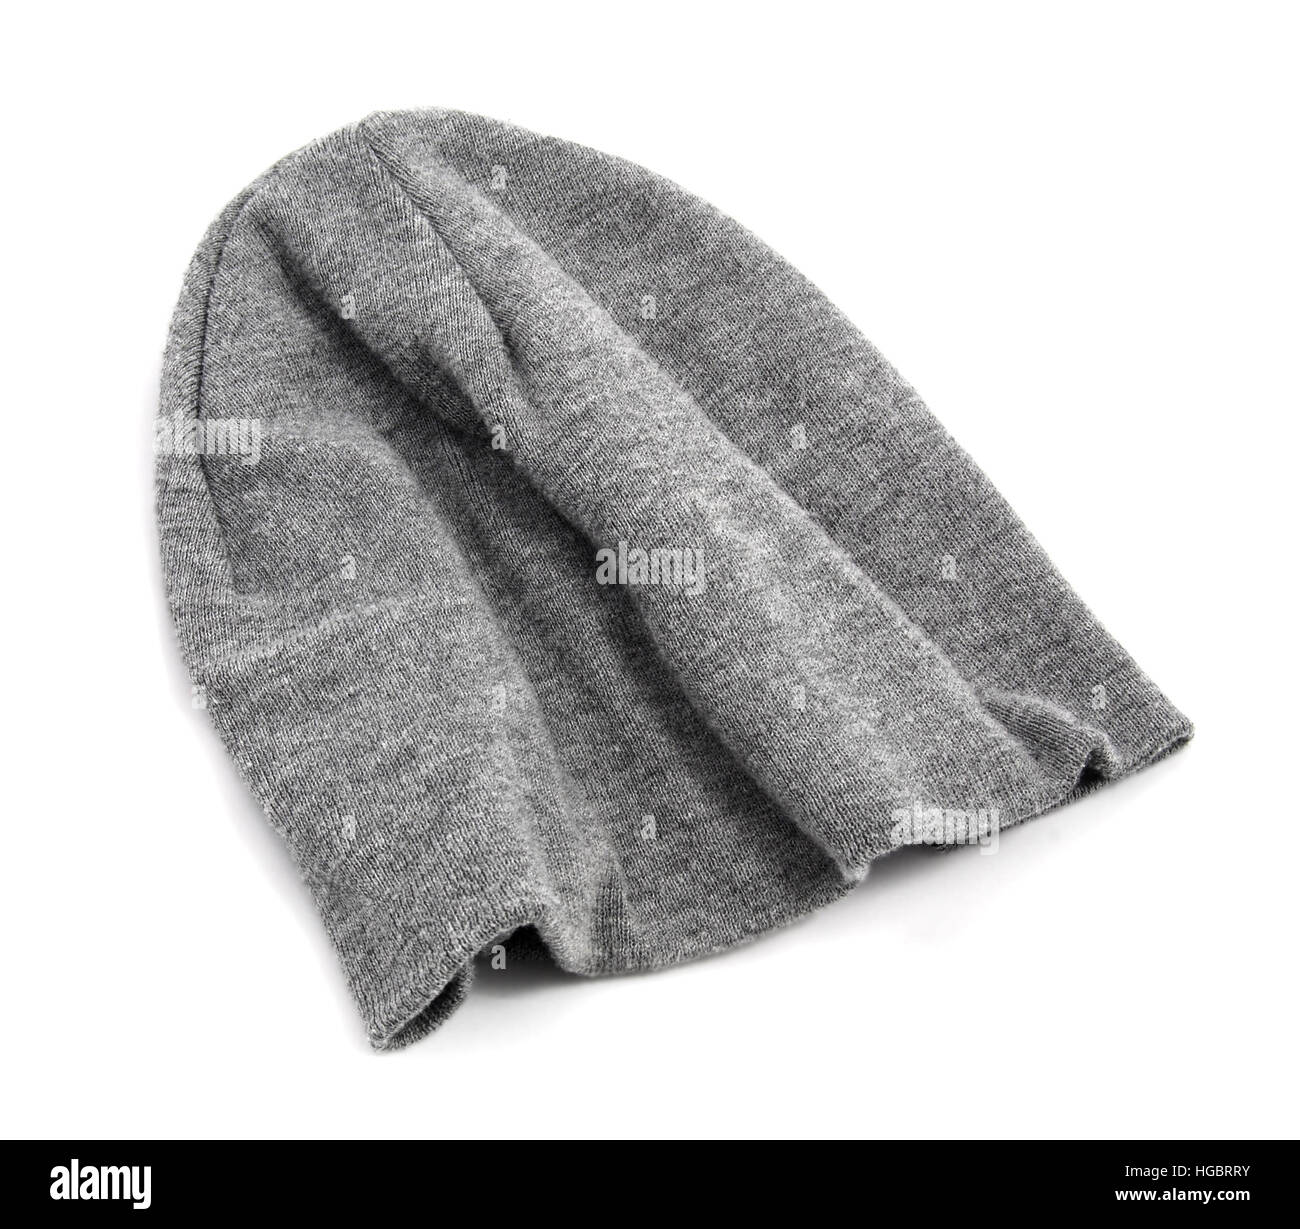 843f04119c64fa Isolated gray stocking cap or knit hat on white Stock Photo ...